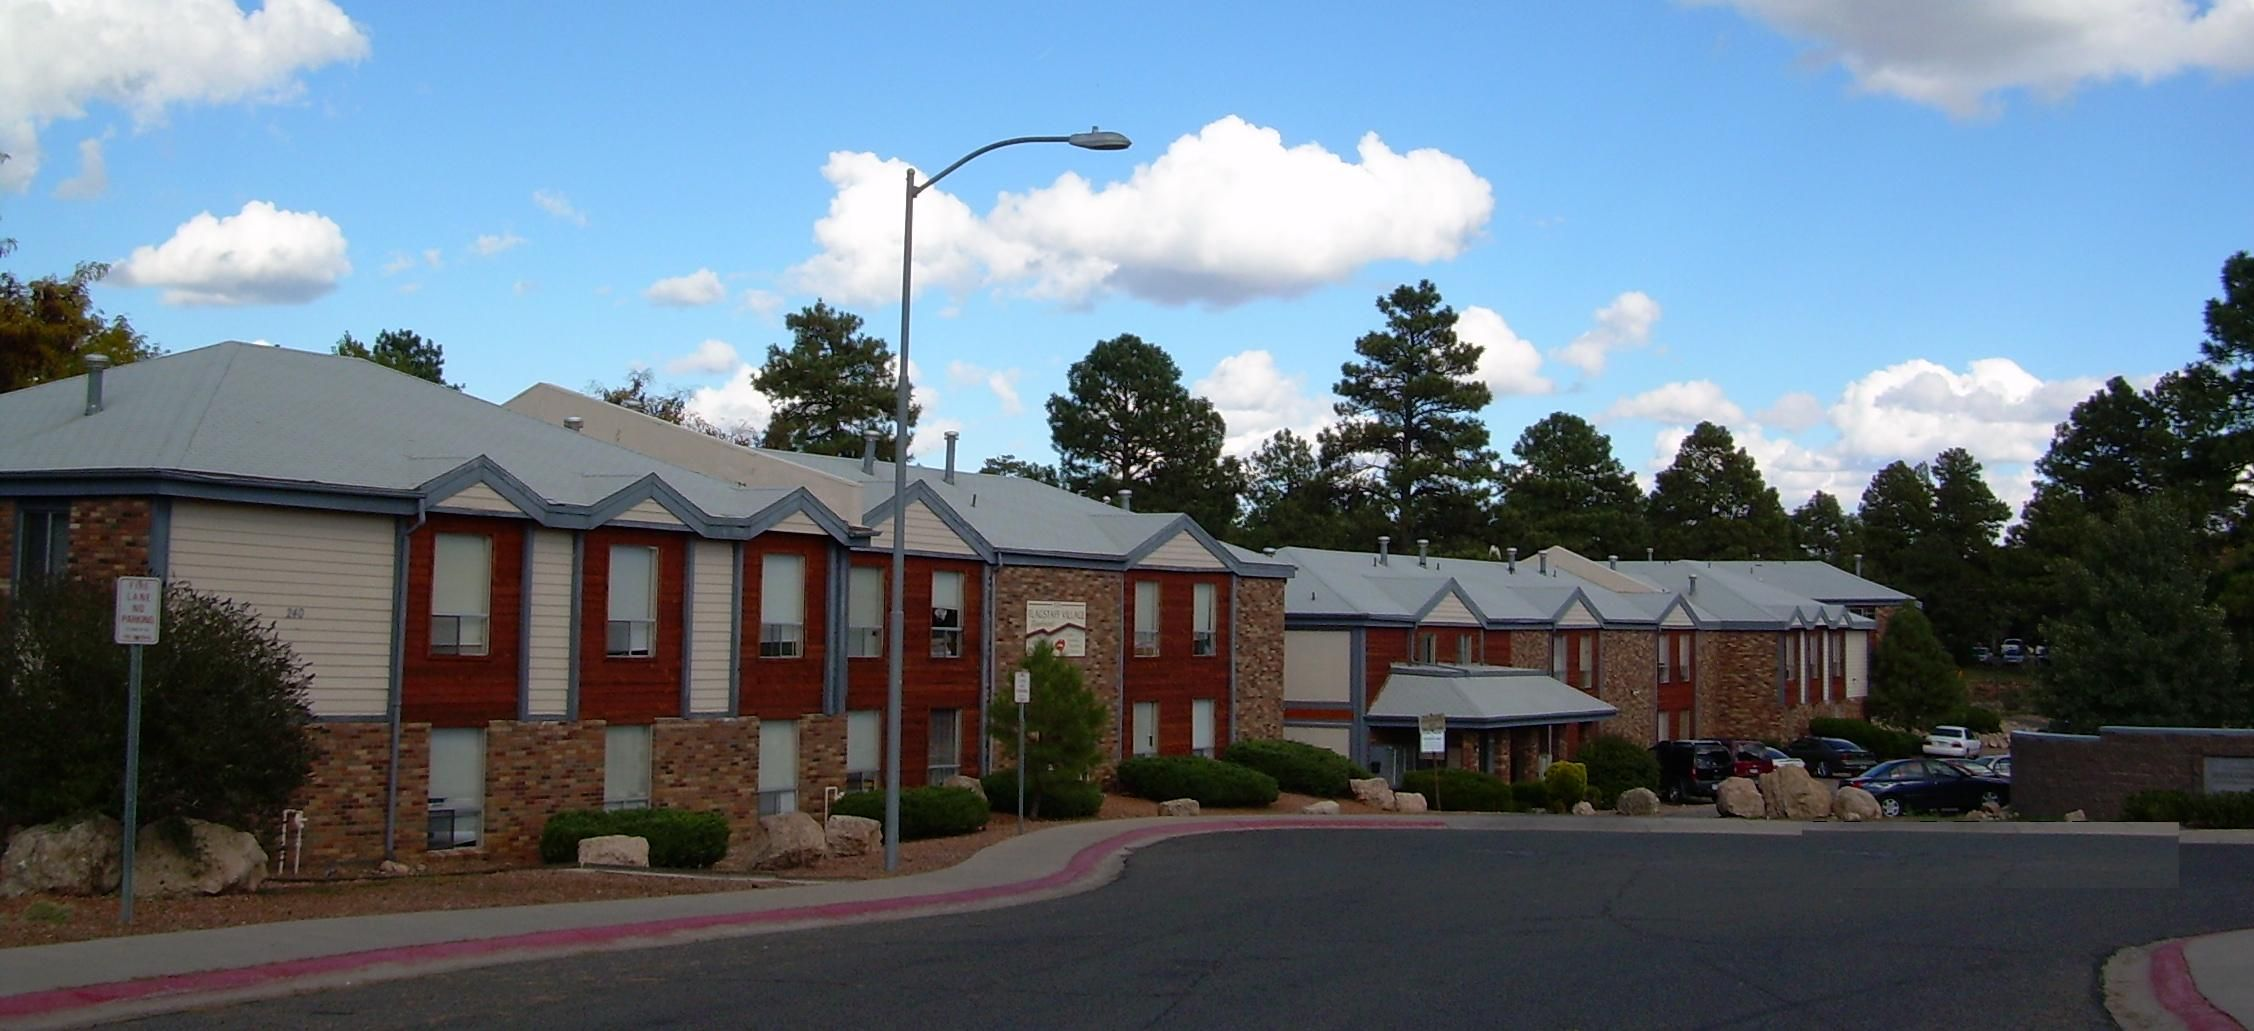 Flagstaff village ucribs for One bedroom apartments in flagstaff az